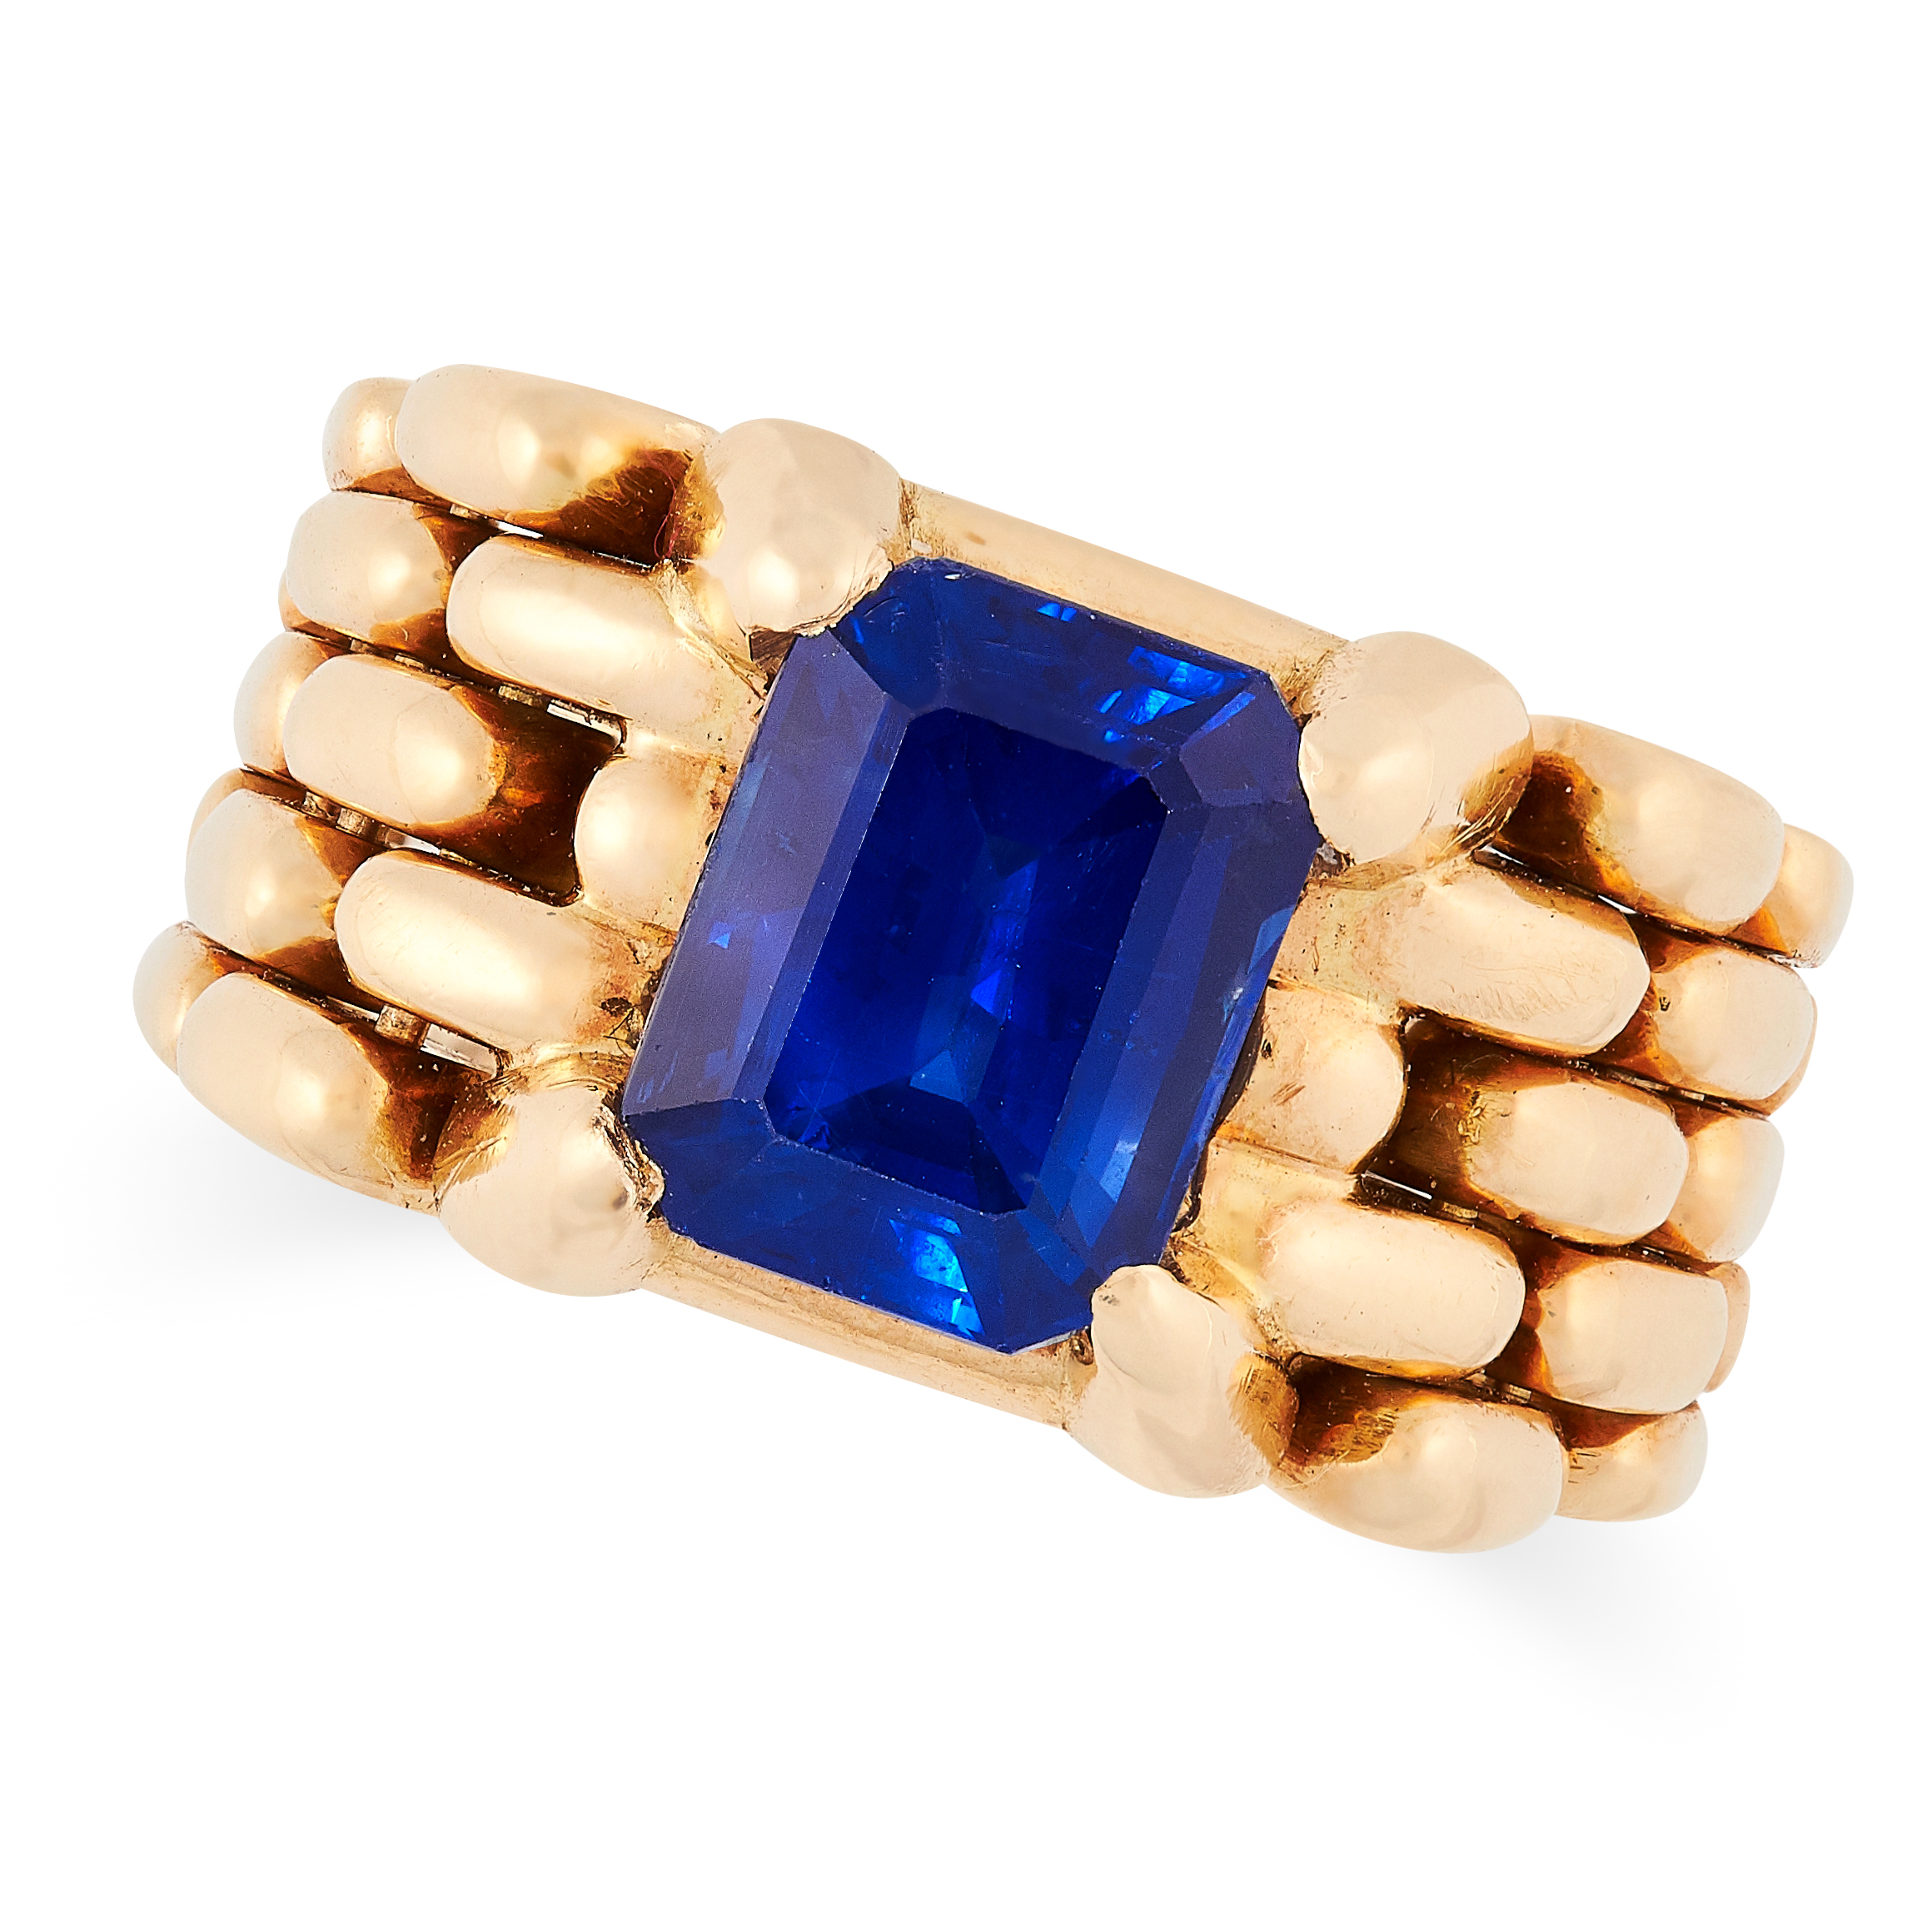 A VINTAGE SAPPHIRE RING comprising of an emerald cut sapphire of 4.70 carats in an articulated